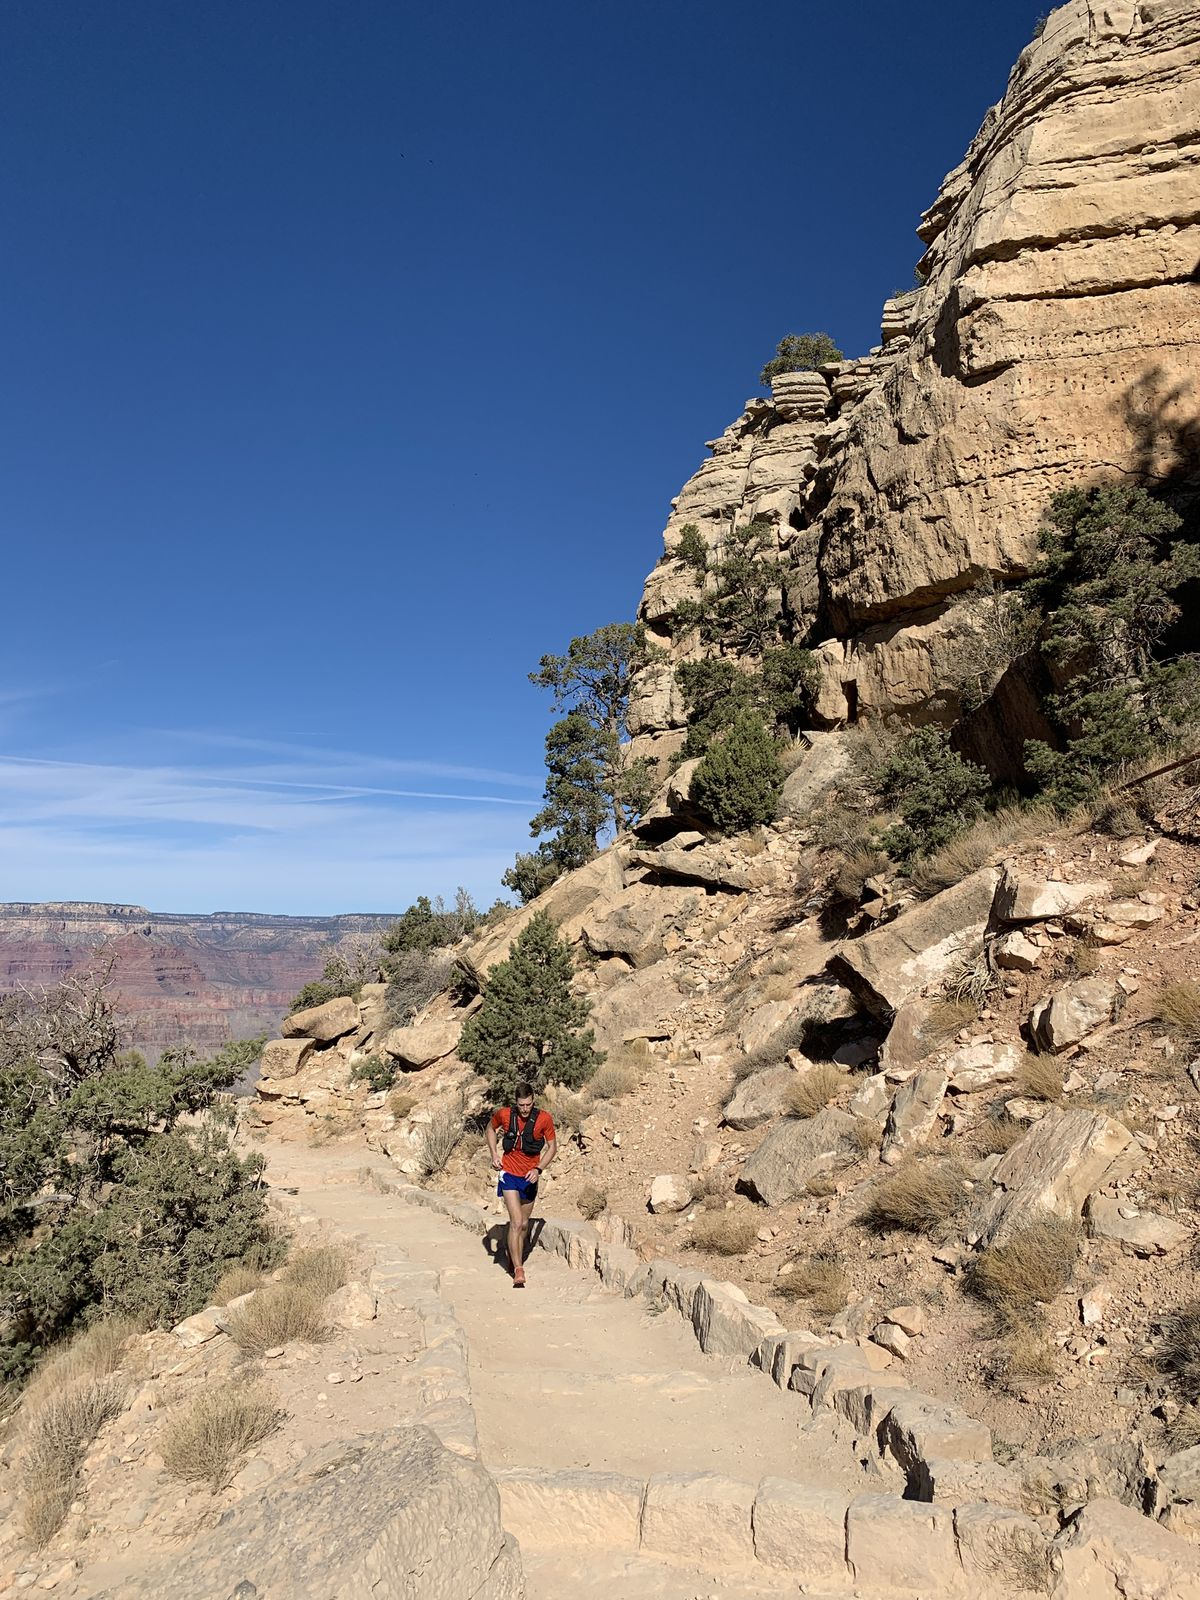 Anchorage runner Lars Arneson nears the top of the Grand Canyon's South Kaibab Trailhead as he approaches the end of his record-setting Rim to Rim to Rim run on Friday, Nov. 20, 2020. (Photo by Anna Dalton)